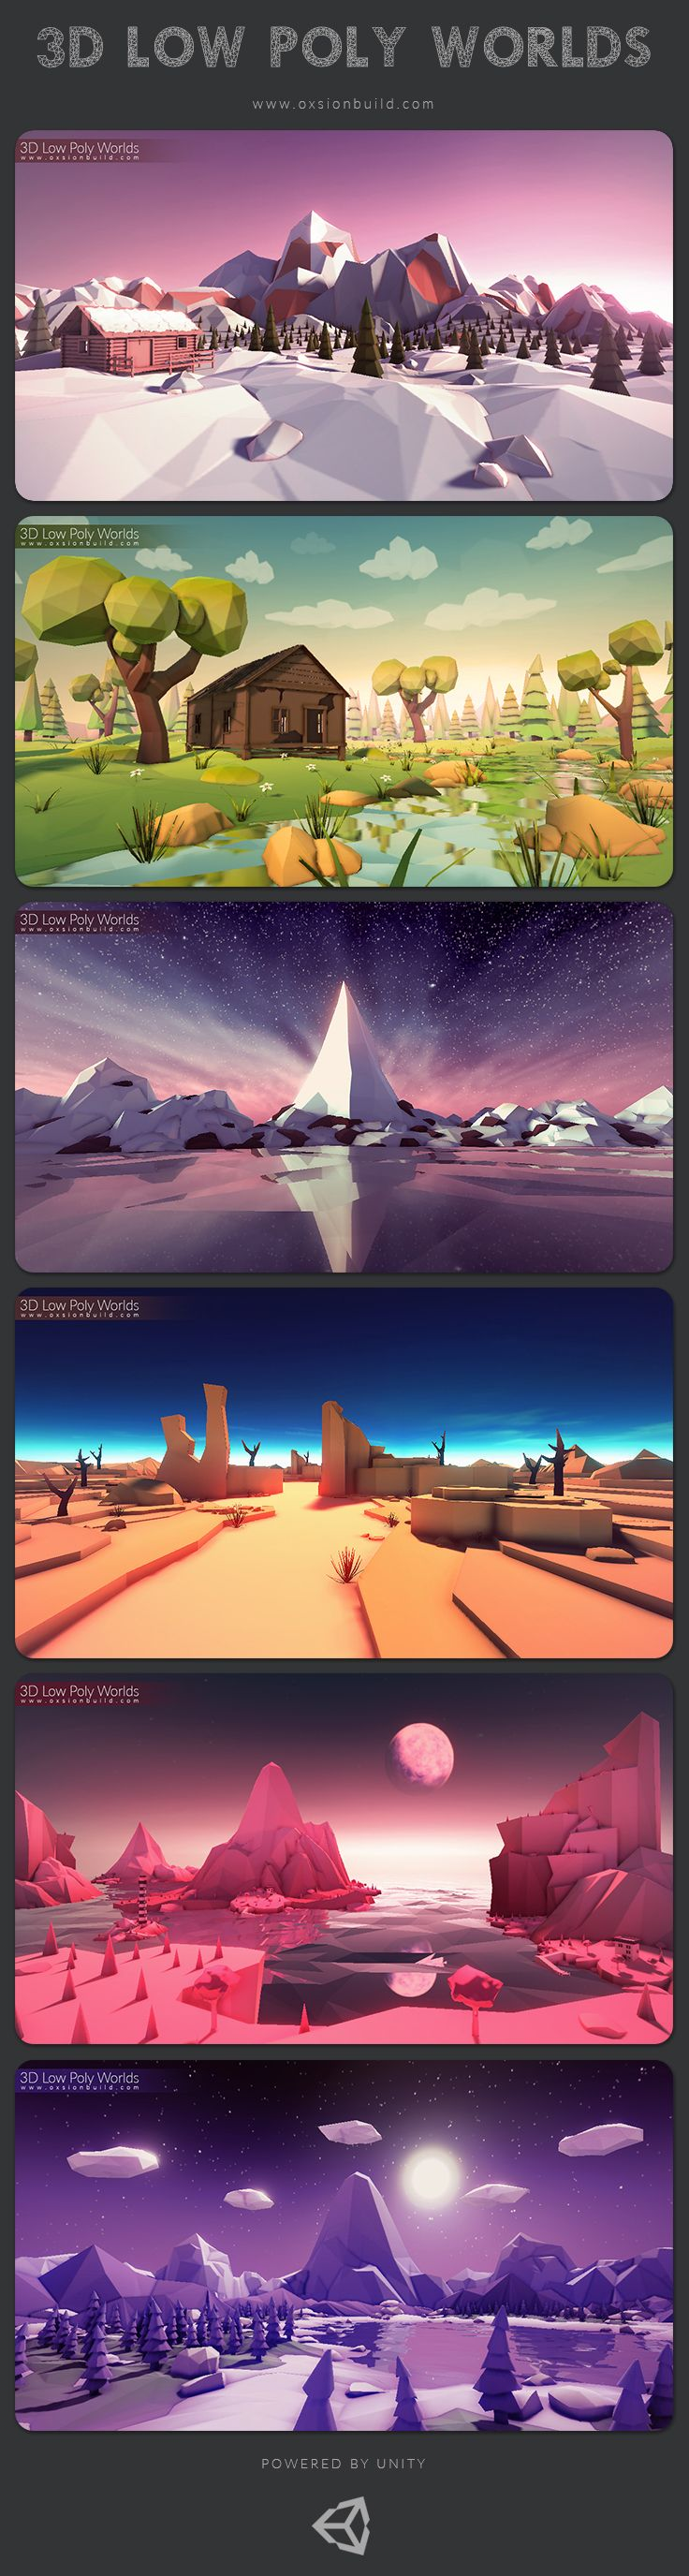 3D Low Poly Worlds is different colorful worlds, in the low poly style, to use for your projects. #Unity #AssetStore #GameDesign #GameAssets #GameArt #Game #3DGame #GameConcept #3D #LowPoly #3DModels #Landspace #Environment #Skybox